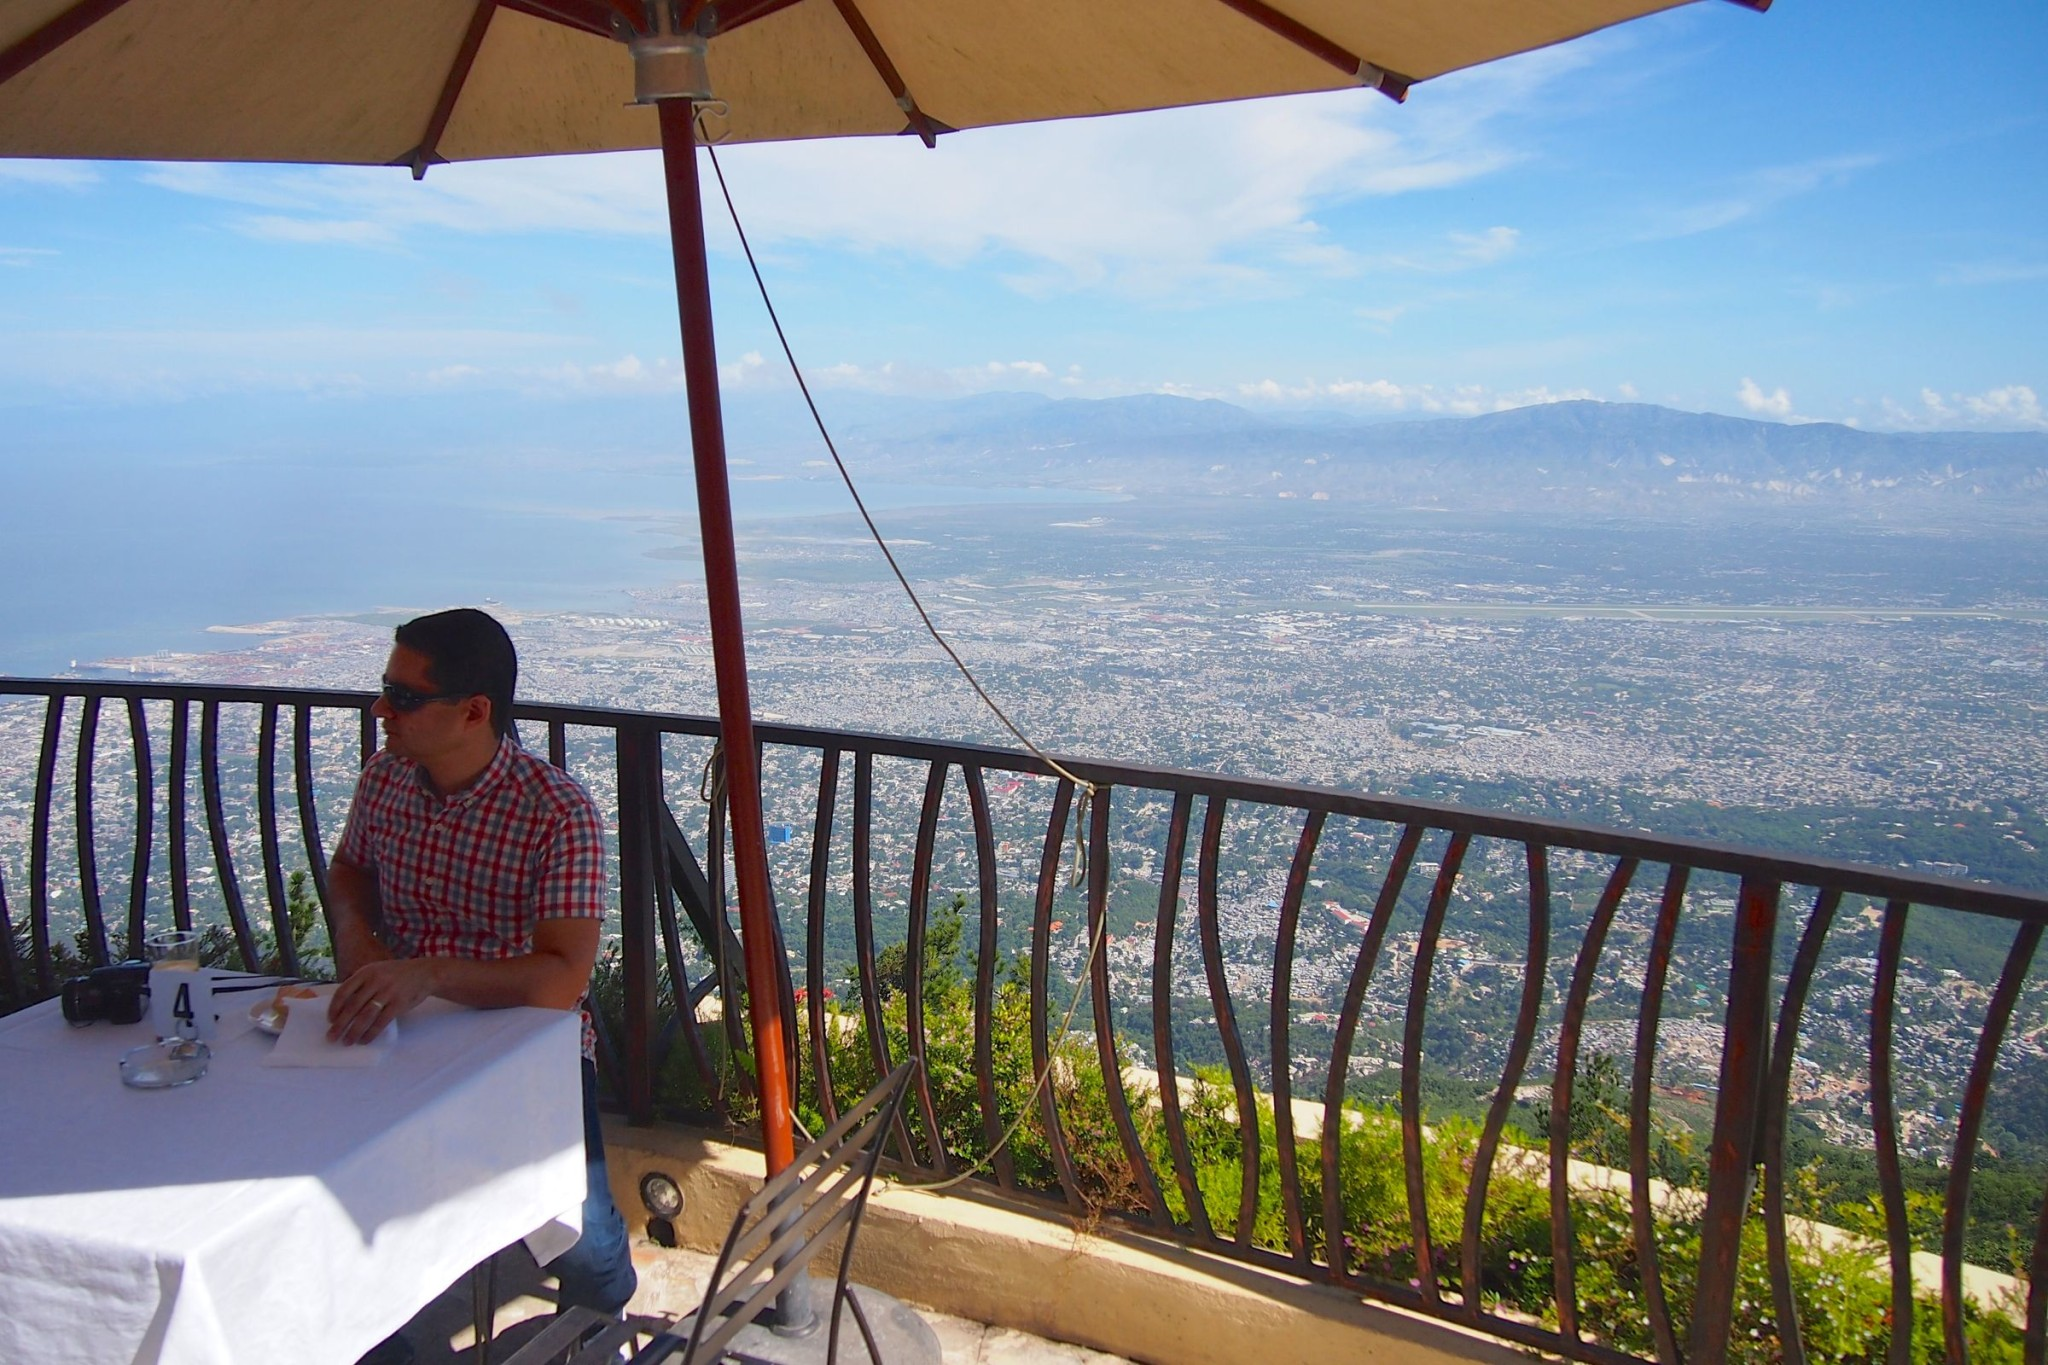 Haiti's Ascent Plain to See at L'Observatoire: Uncommon Attraction